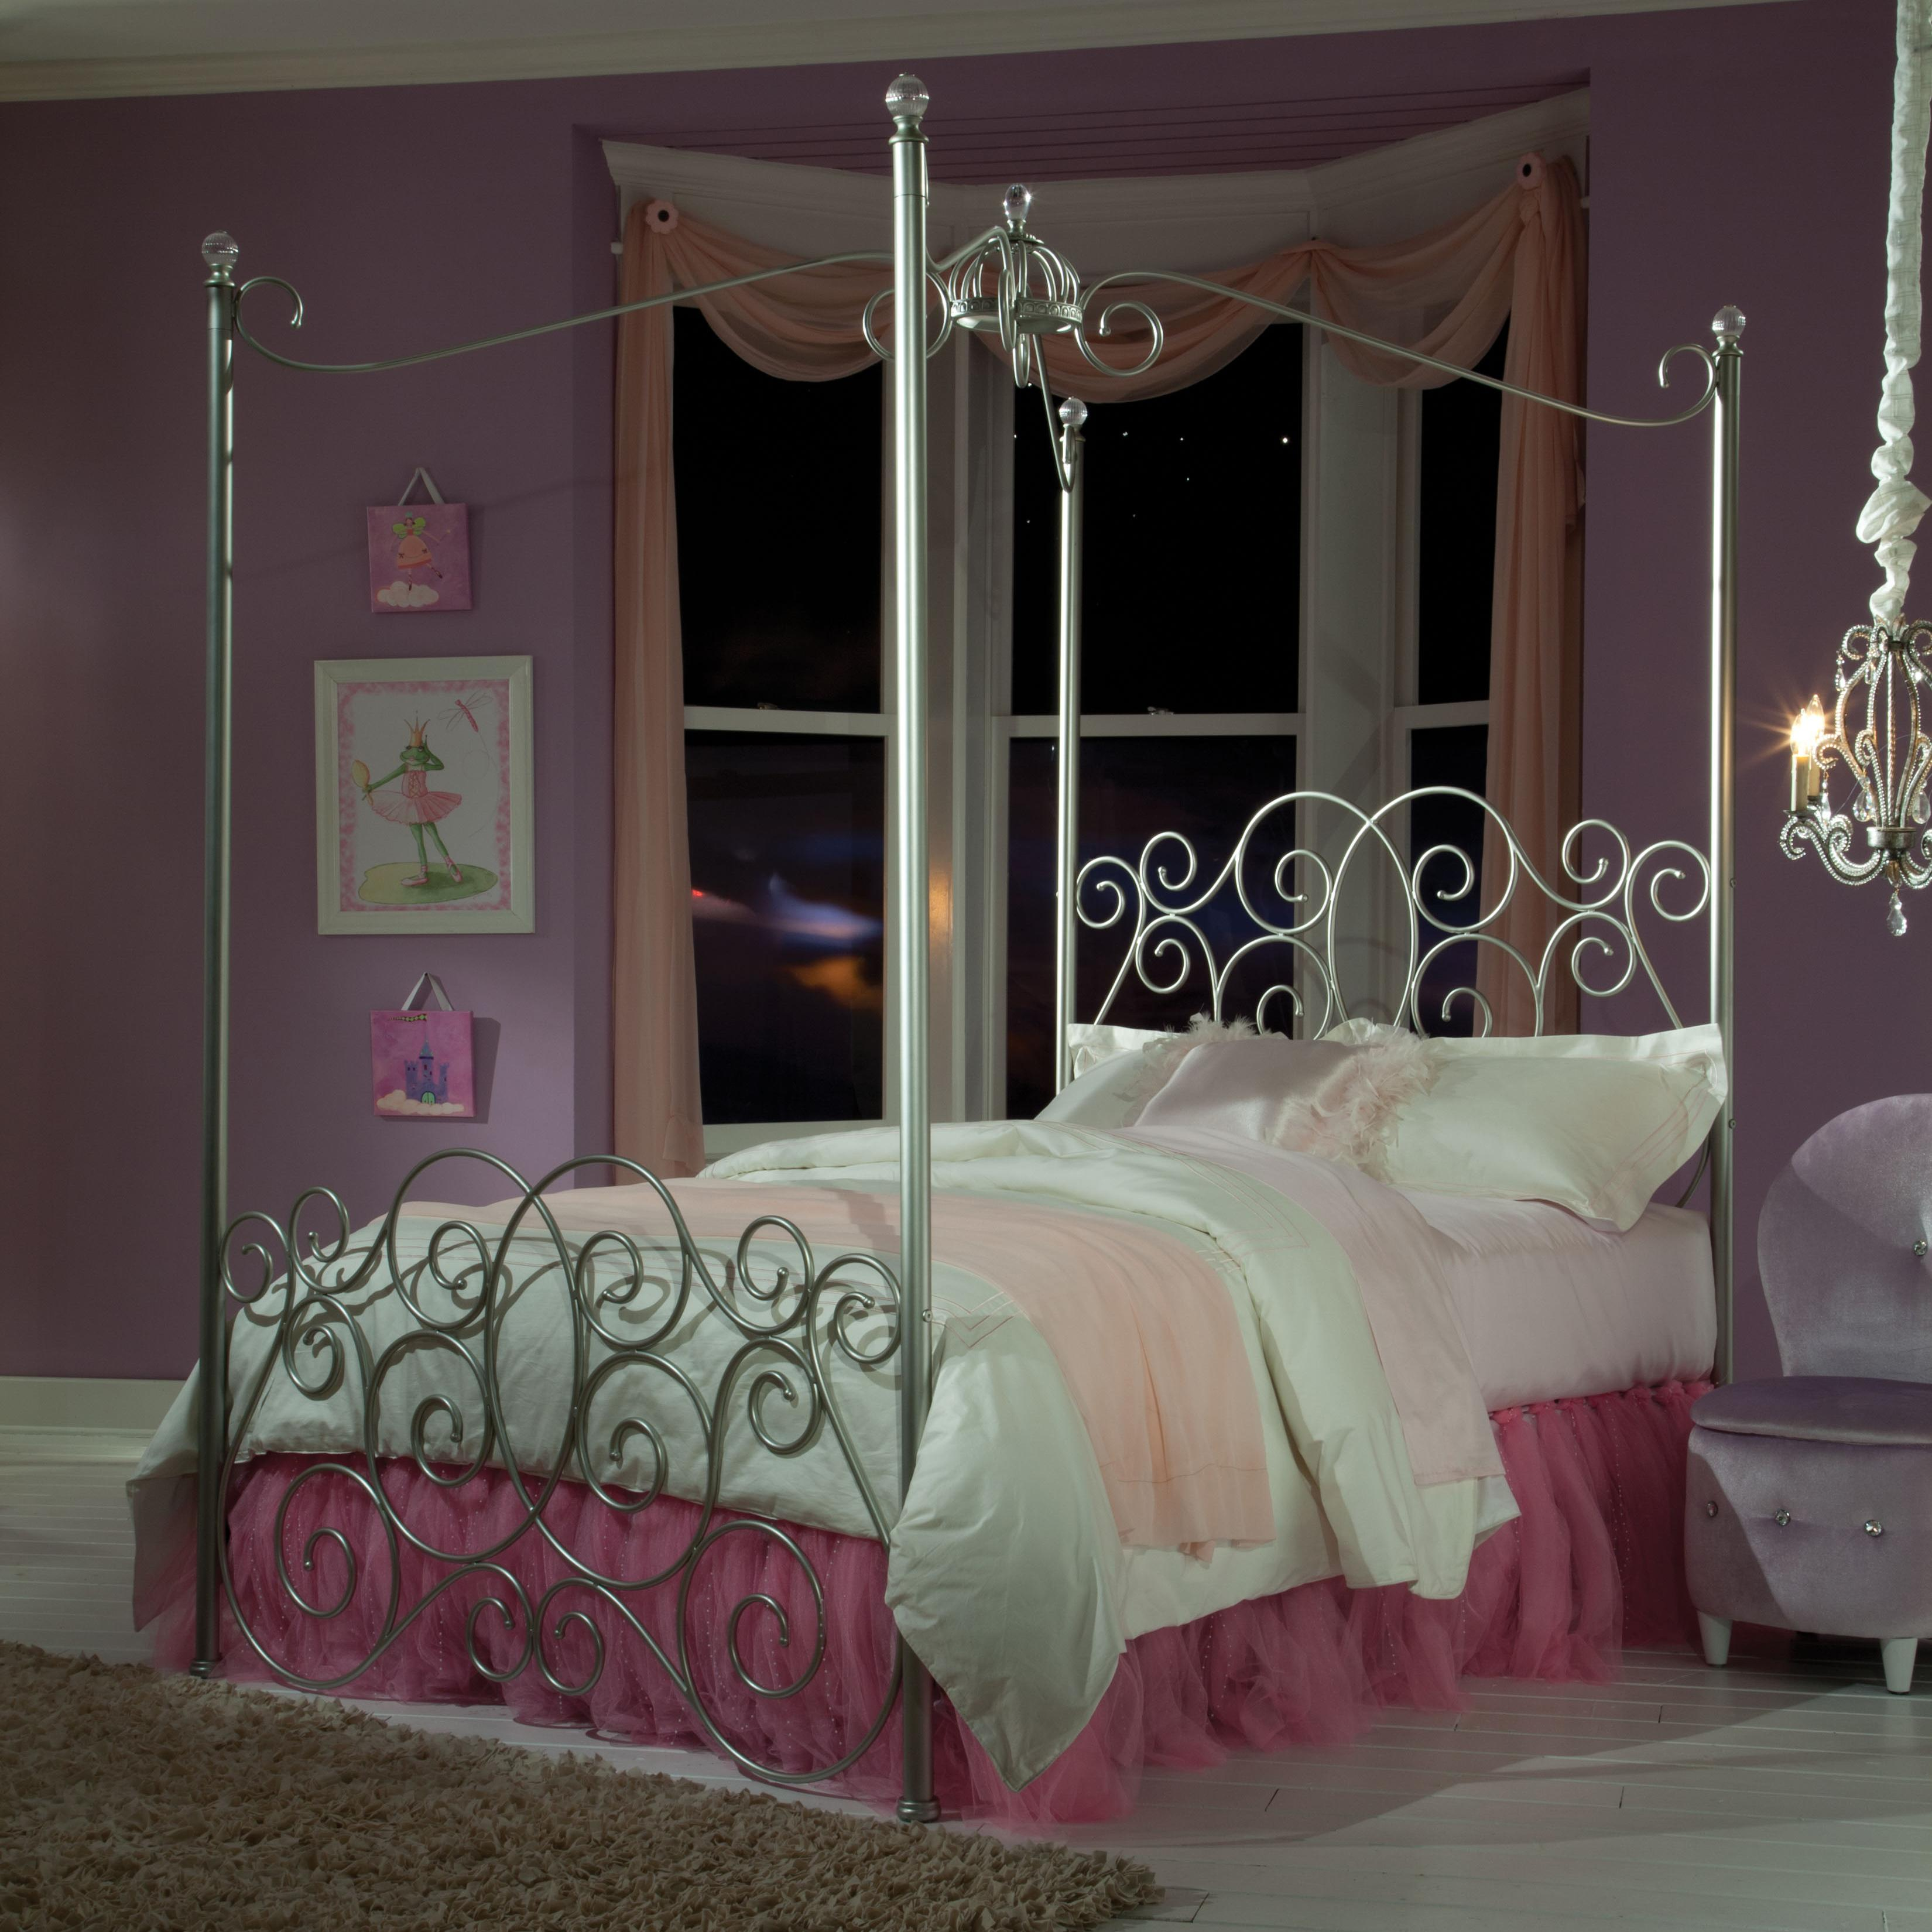 Standard Furniture Princess Canopy Beds Full Metal Canopy Bed with Clear Post Finials | Wayside Furniture | Canopy Bed & Standard Furniture Princess Canopy Beds Full Metal Canopy Bed with ...